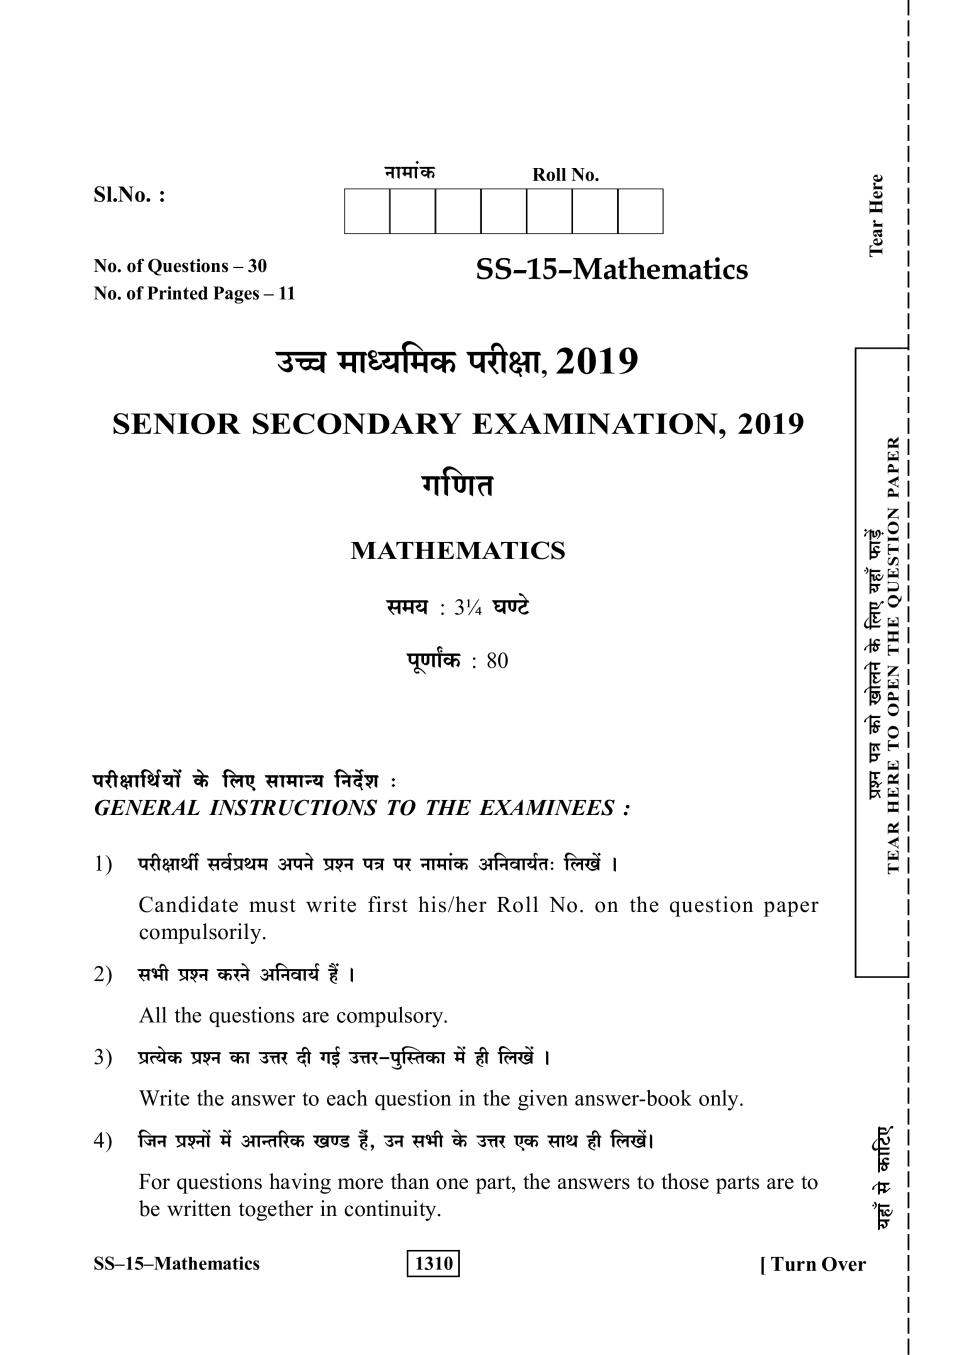 Rajasthan Board 12th Class Mathematics Question Paper 2019 - Page 1